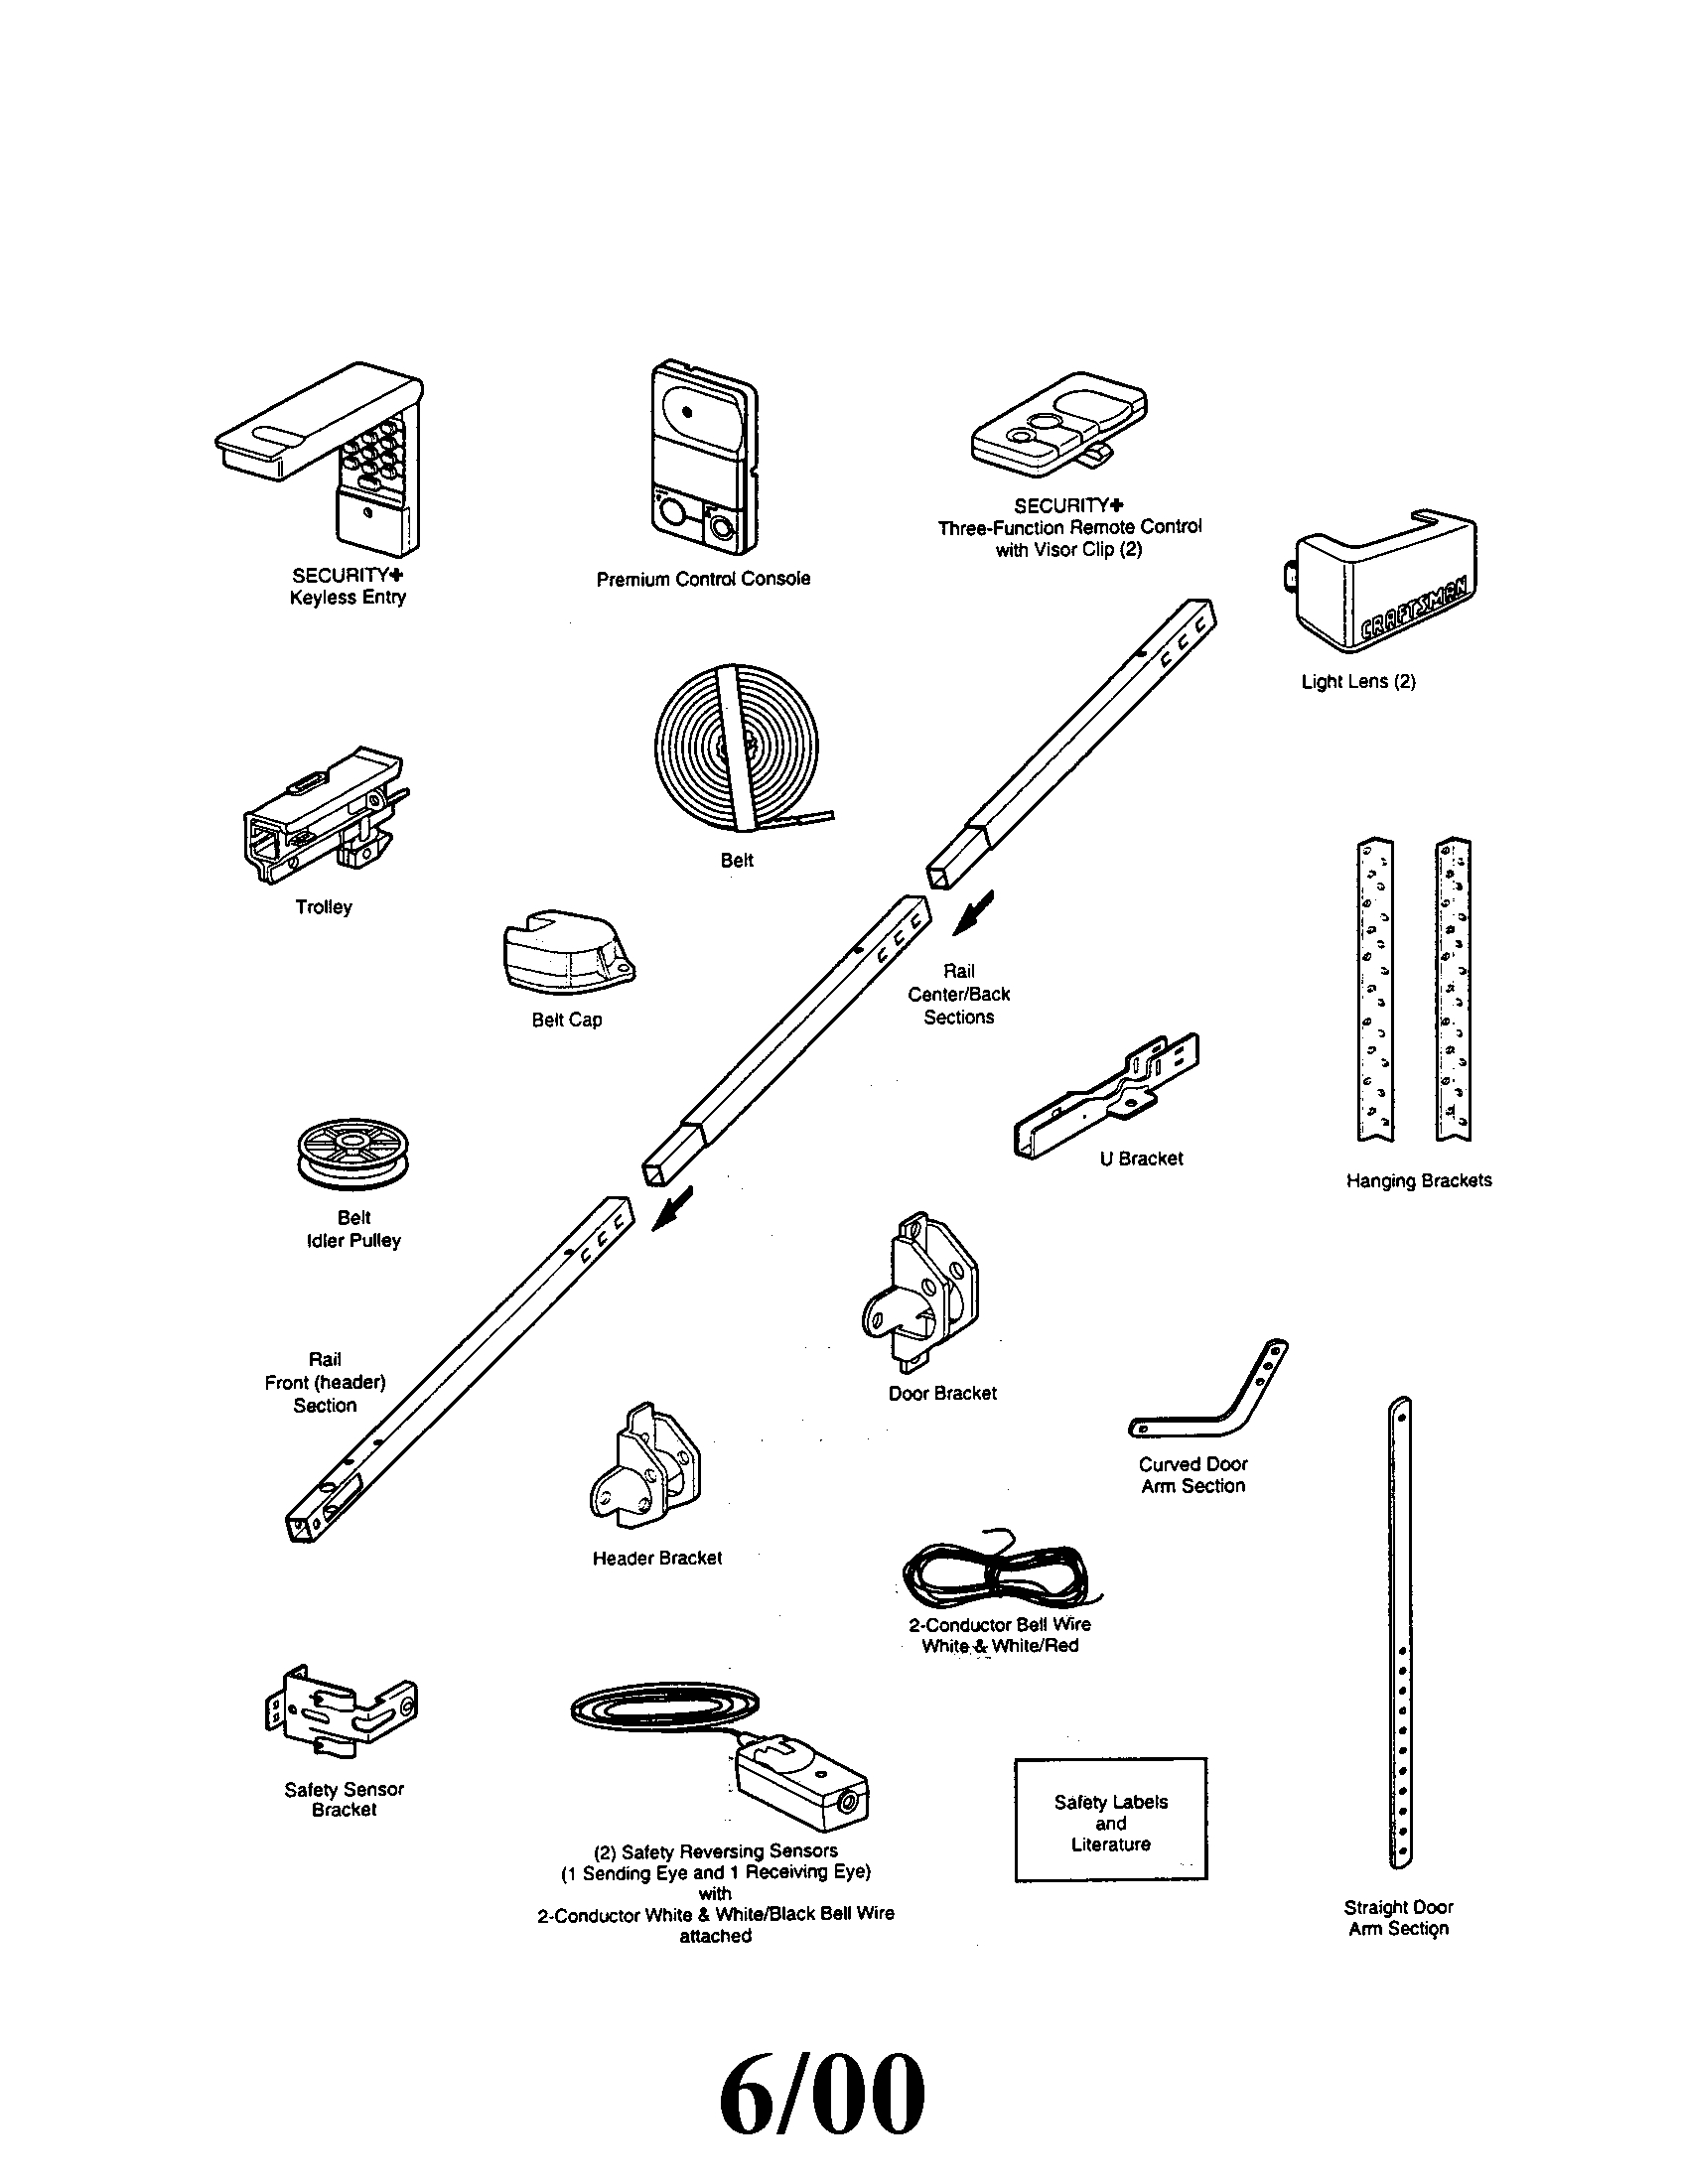 parts for garage door opener image collections french door within genie garage door opener parts diagram genie garage door sensor wiring diagram gandul 45 77 79 119 craftsman garage door opener sensor wiring diagram at mifinder.co